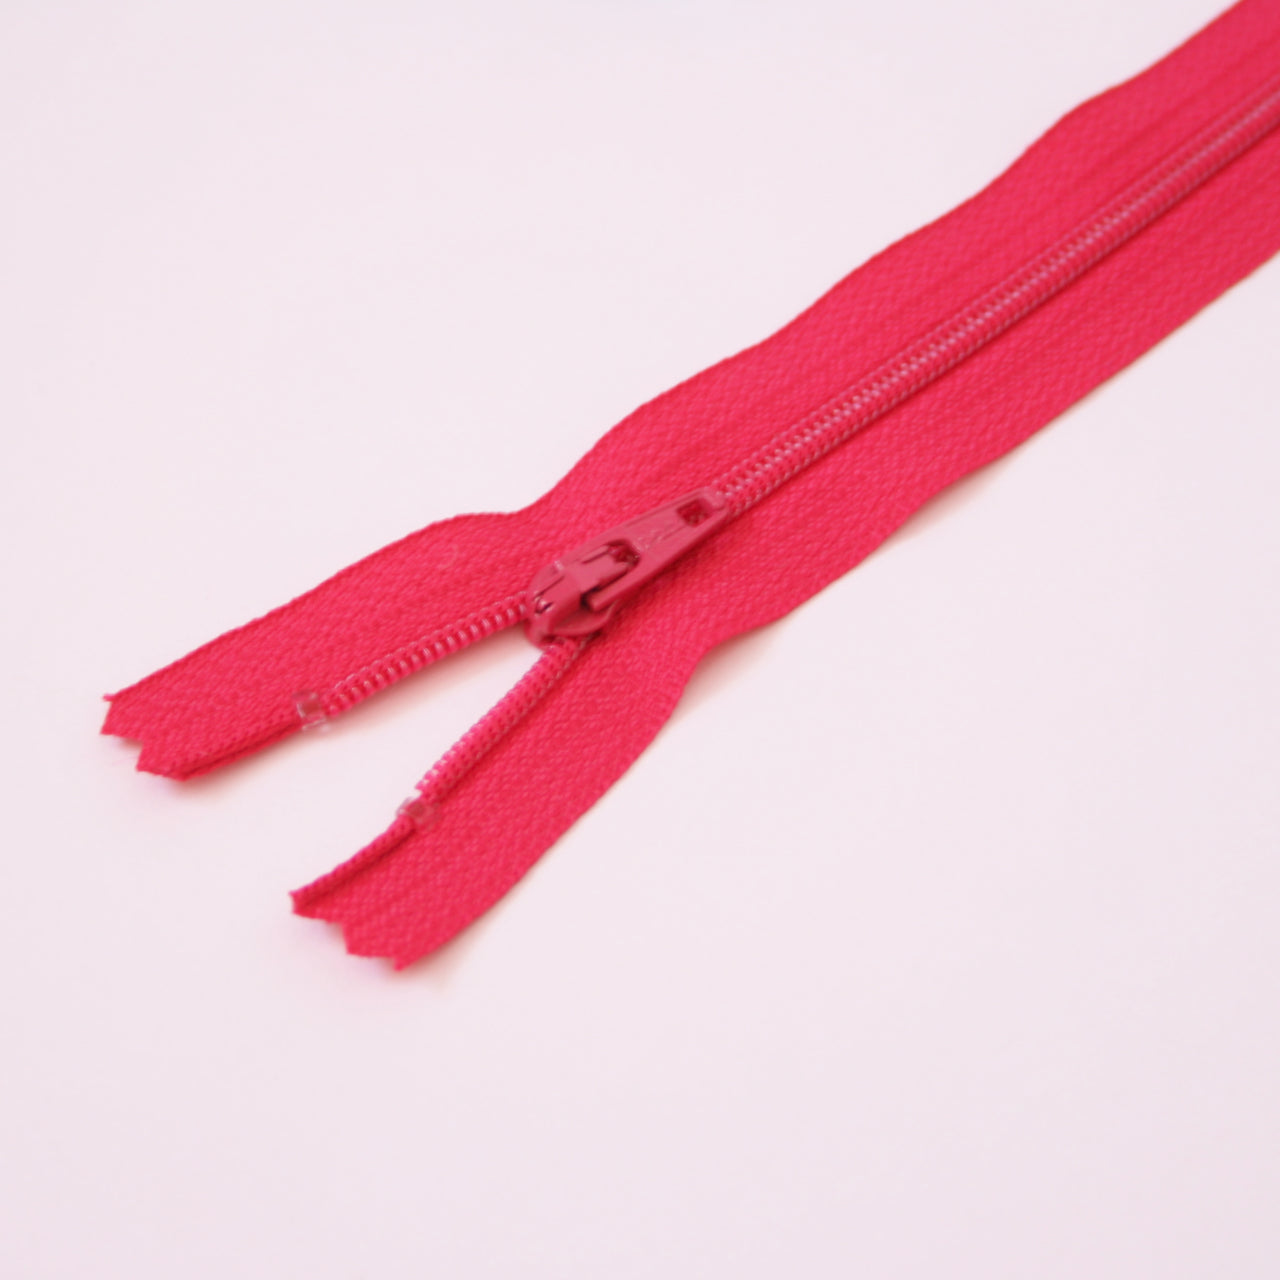 23cm 9 Inch Nylon YKK Dress Zip - 817 Cerise